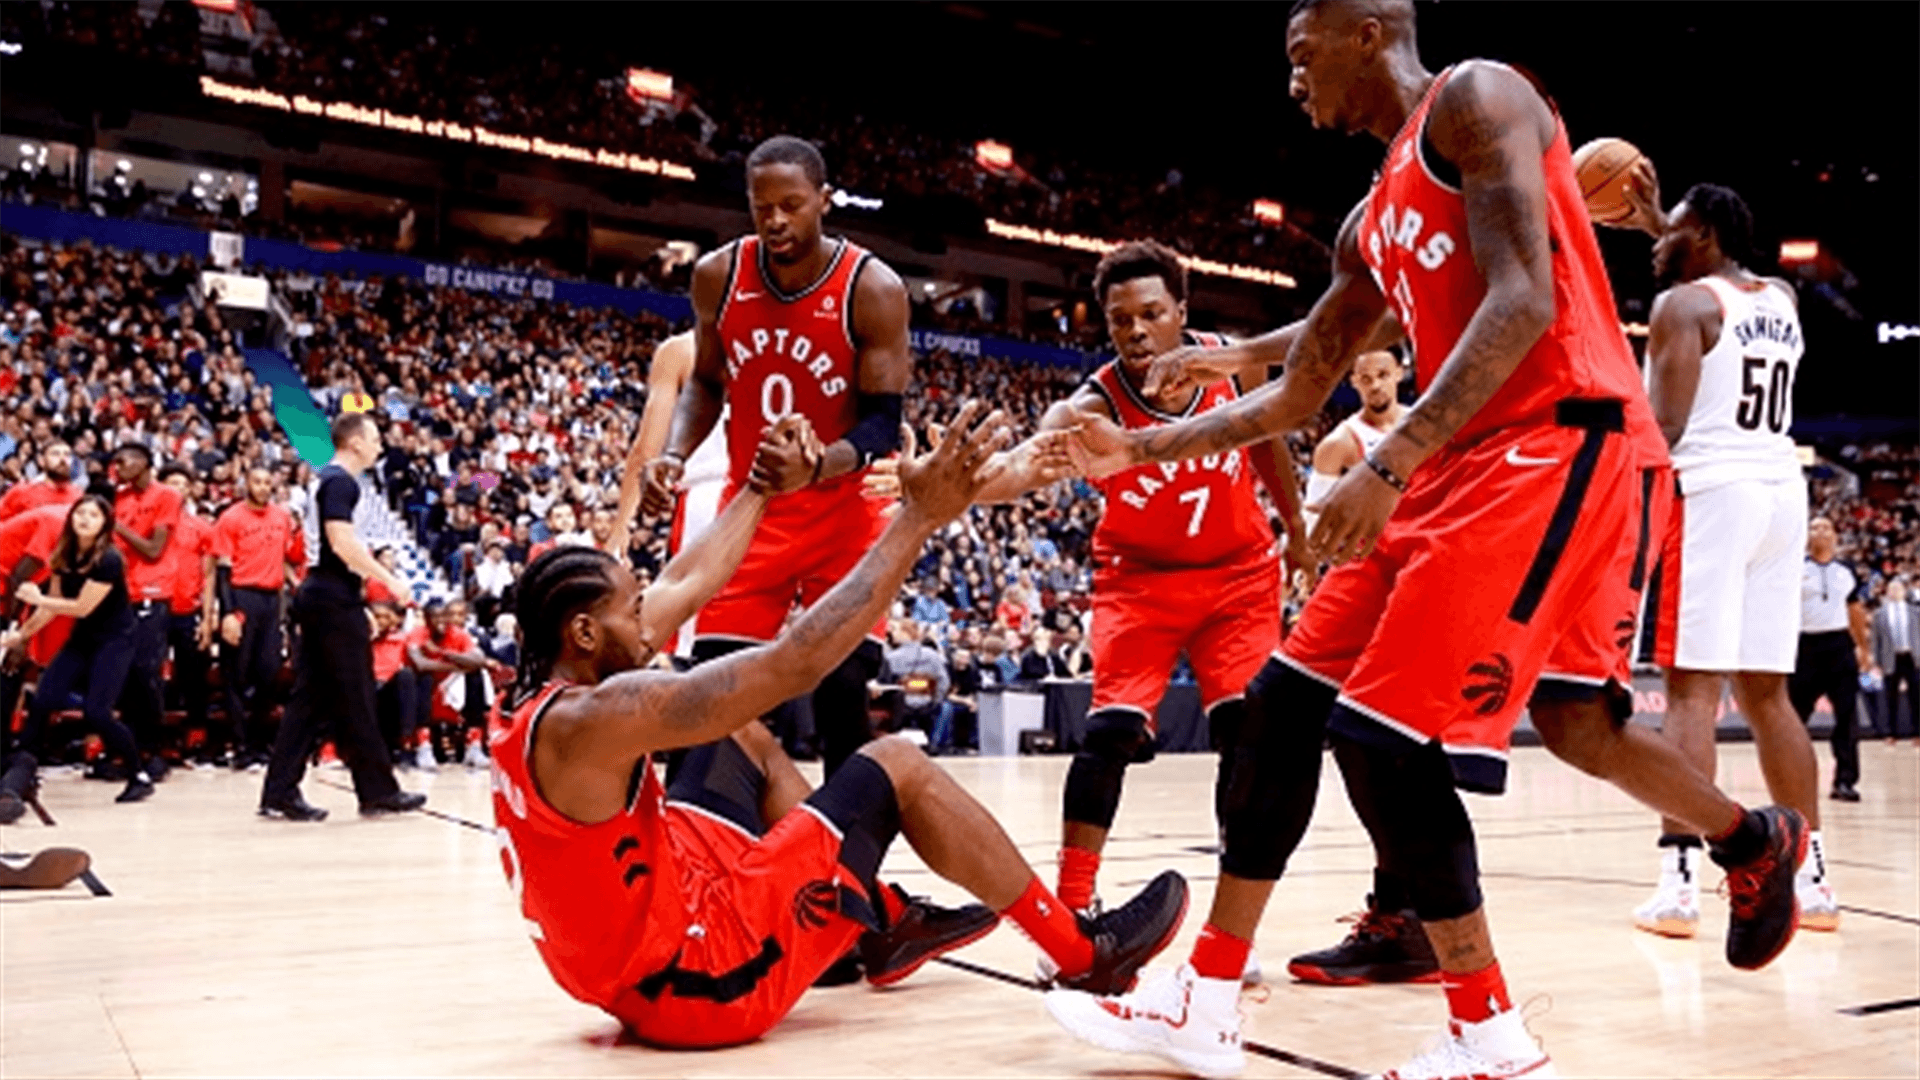 Today's game: Raptors make preseason home debut